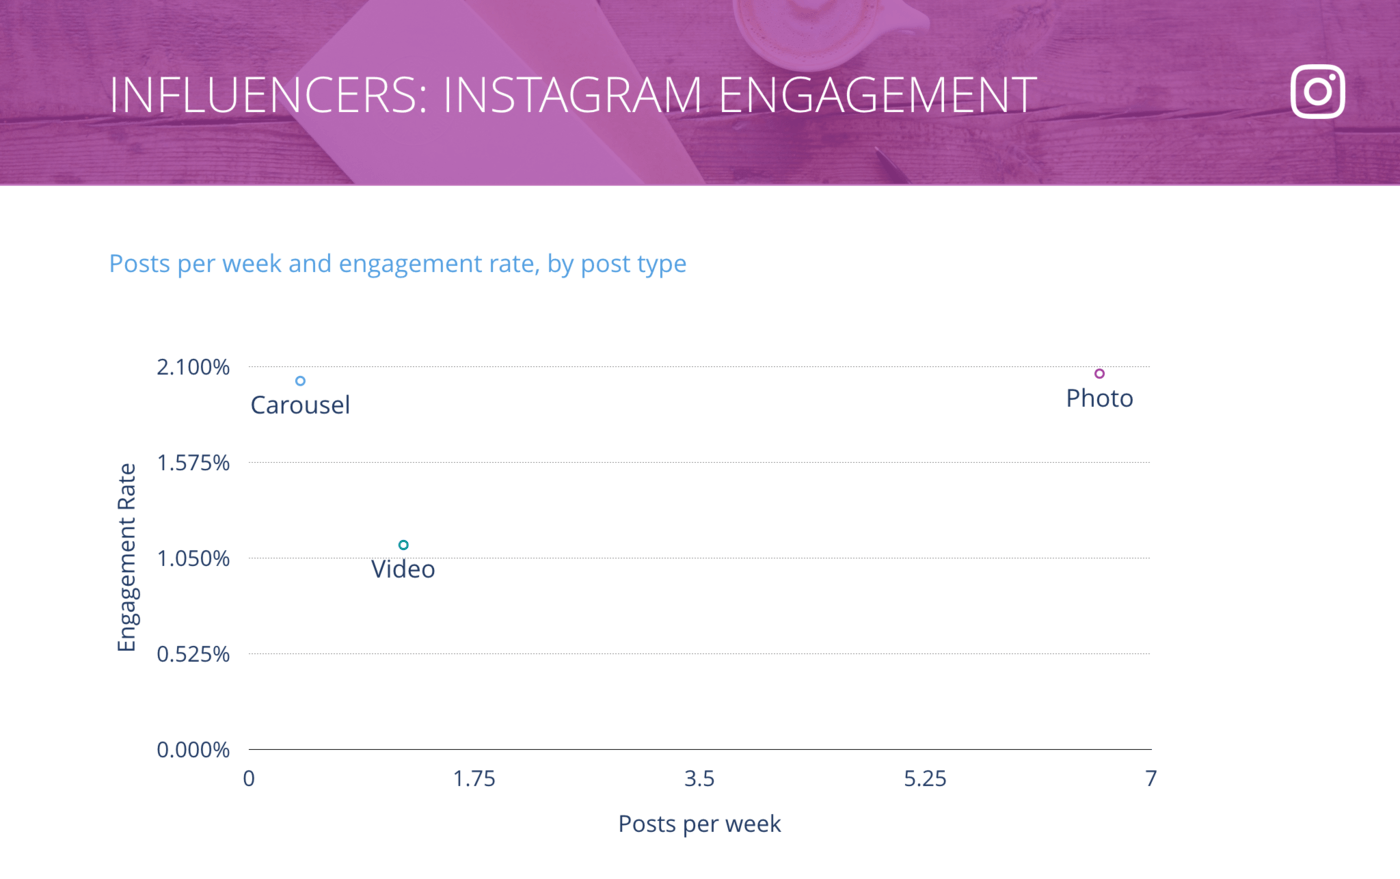 slide for Instagram Posts per Week vs. Engagement Rate per Post, Influencers